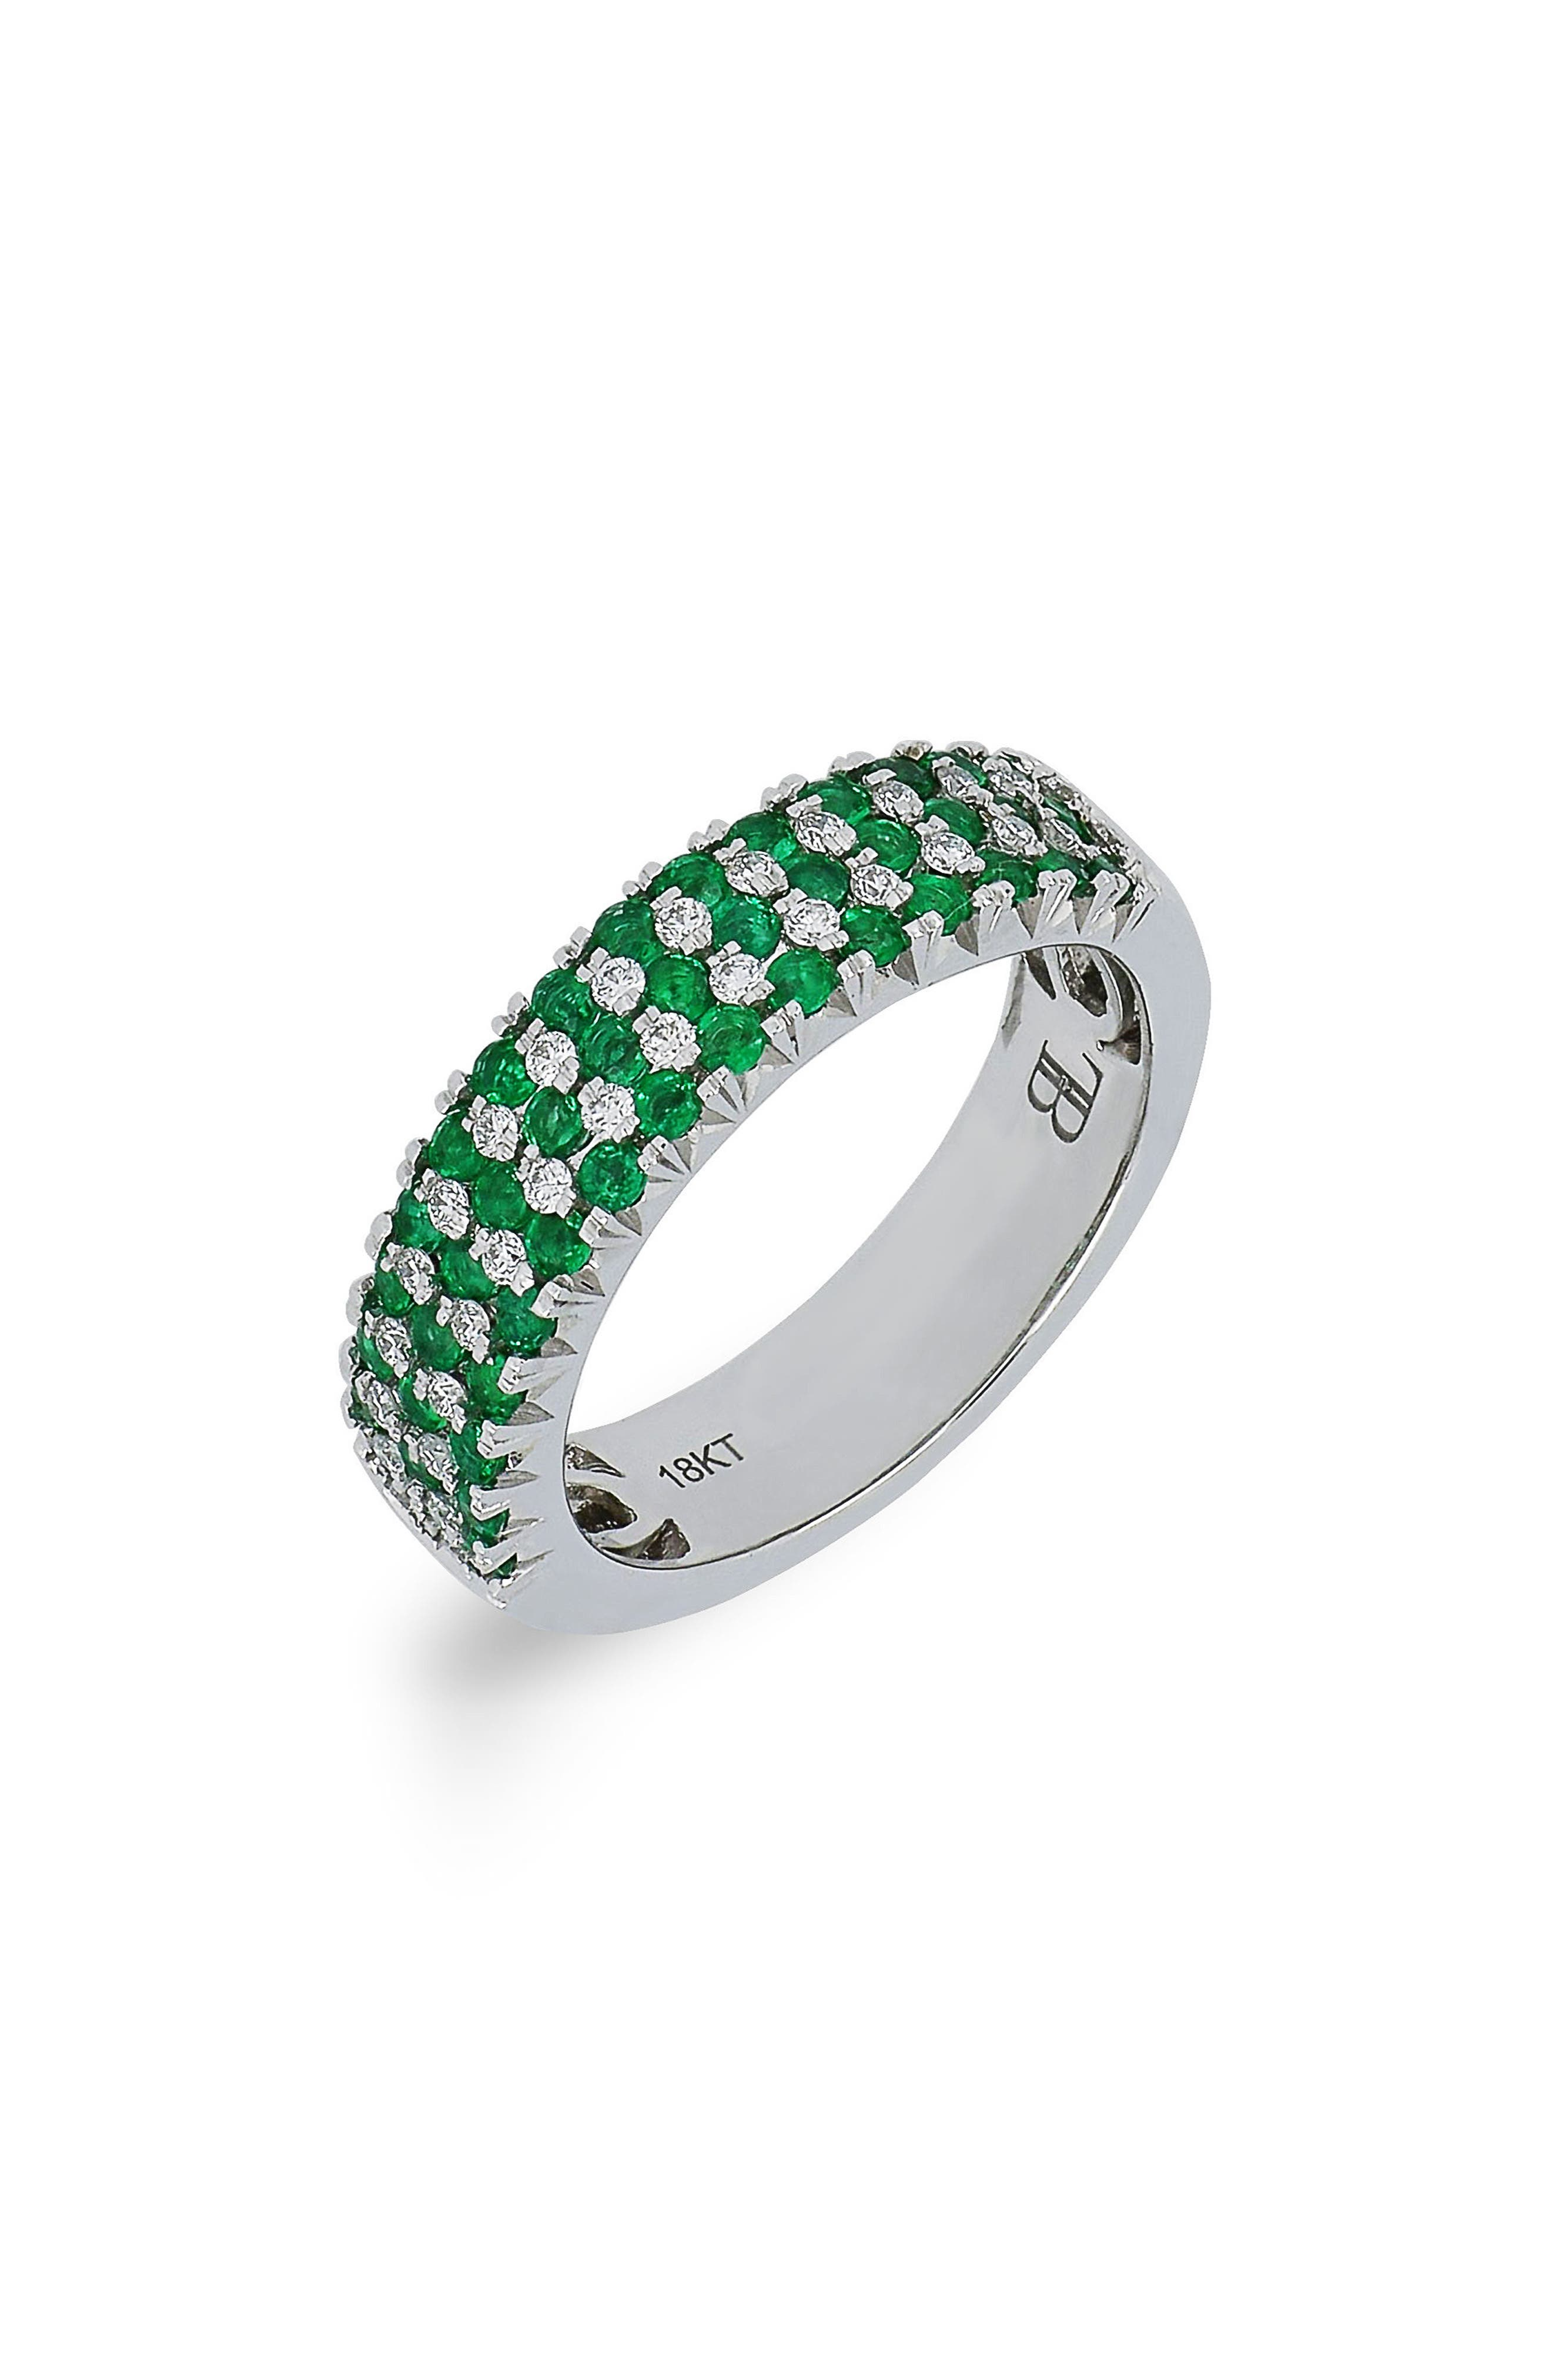 Emerald & Diamond Ring,                             Main thumbnail 1, color,                             711